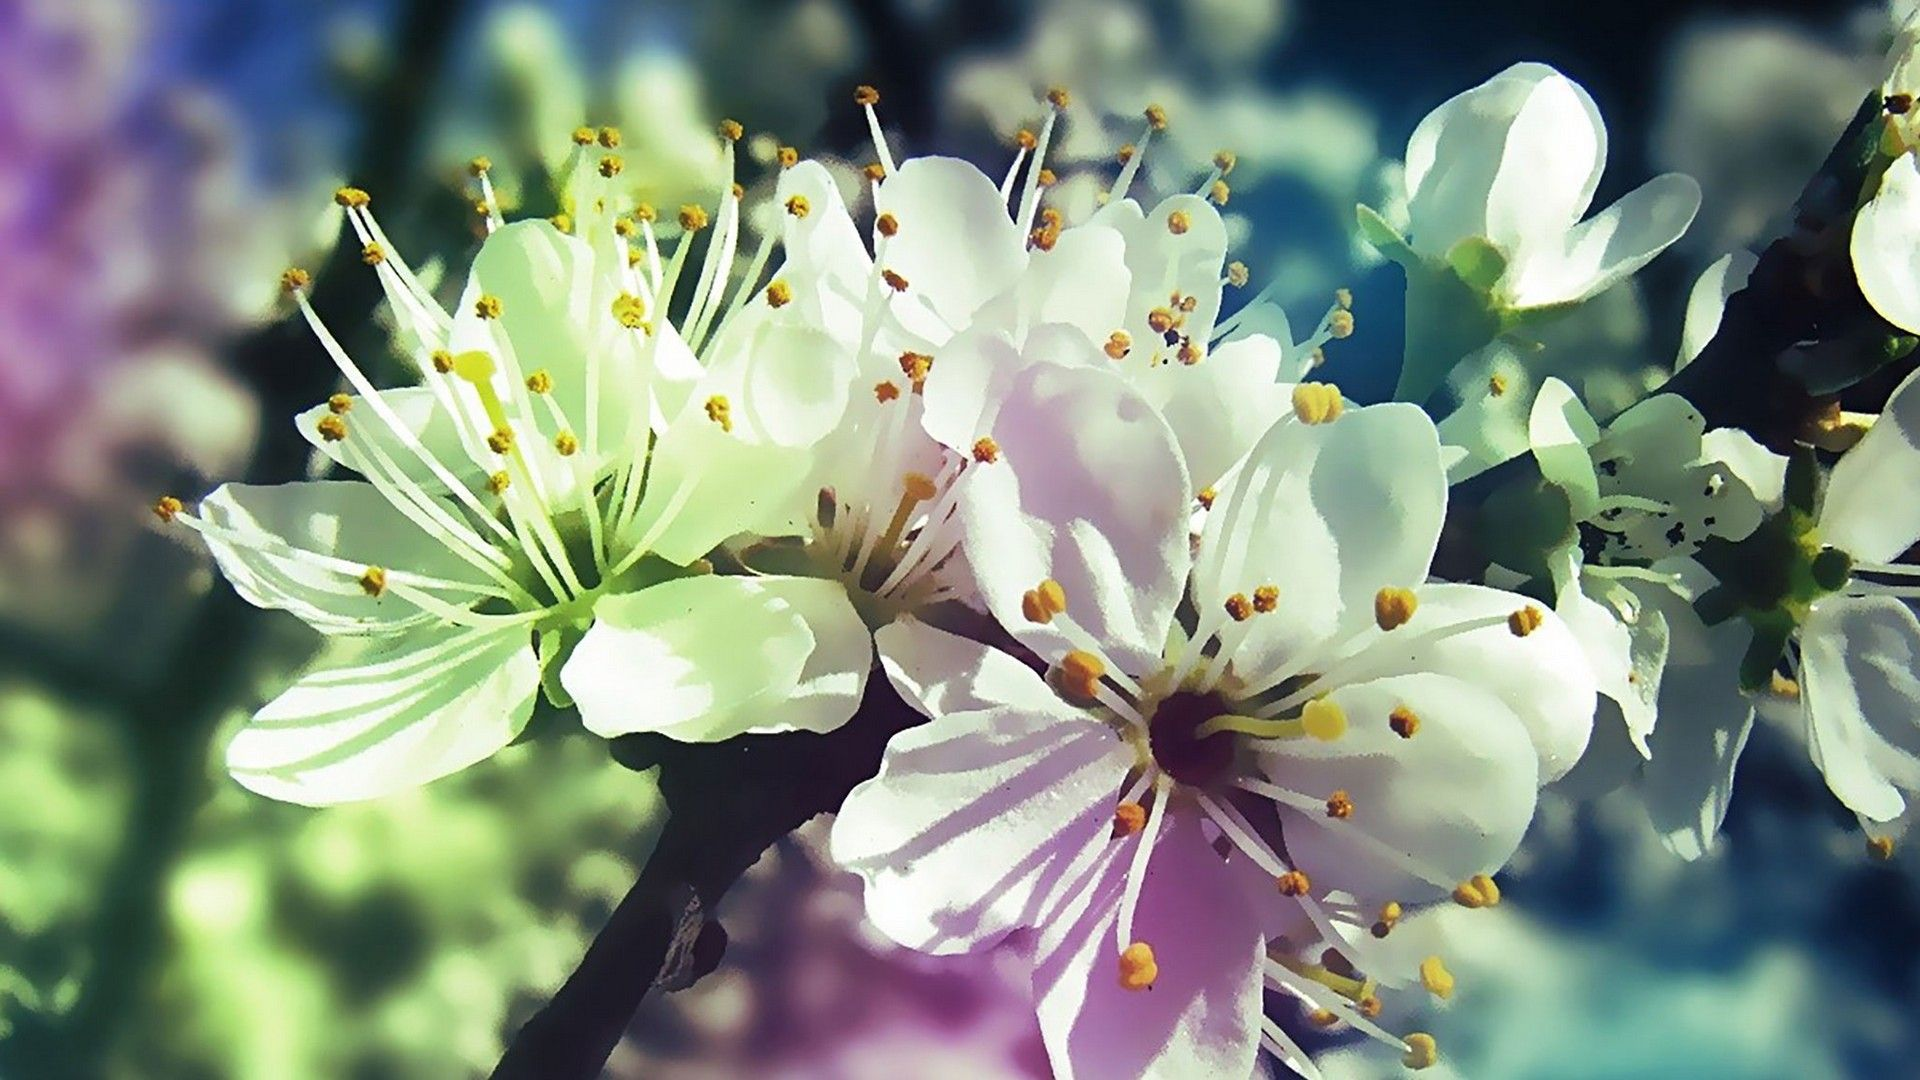 PC Wallpaper Spring Flowers Best HD Wallpapers Wallpaperscute 1920x1080